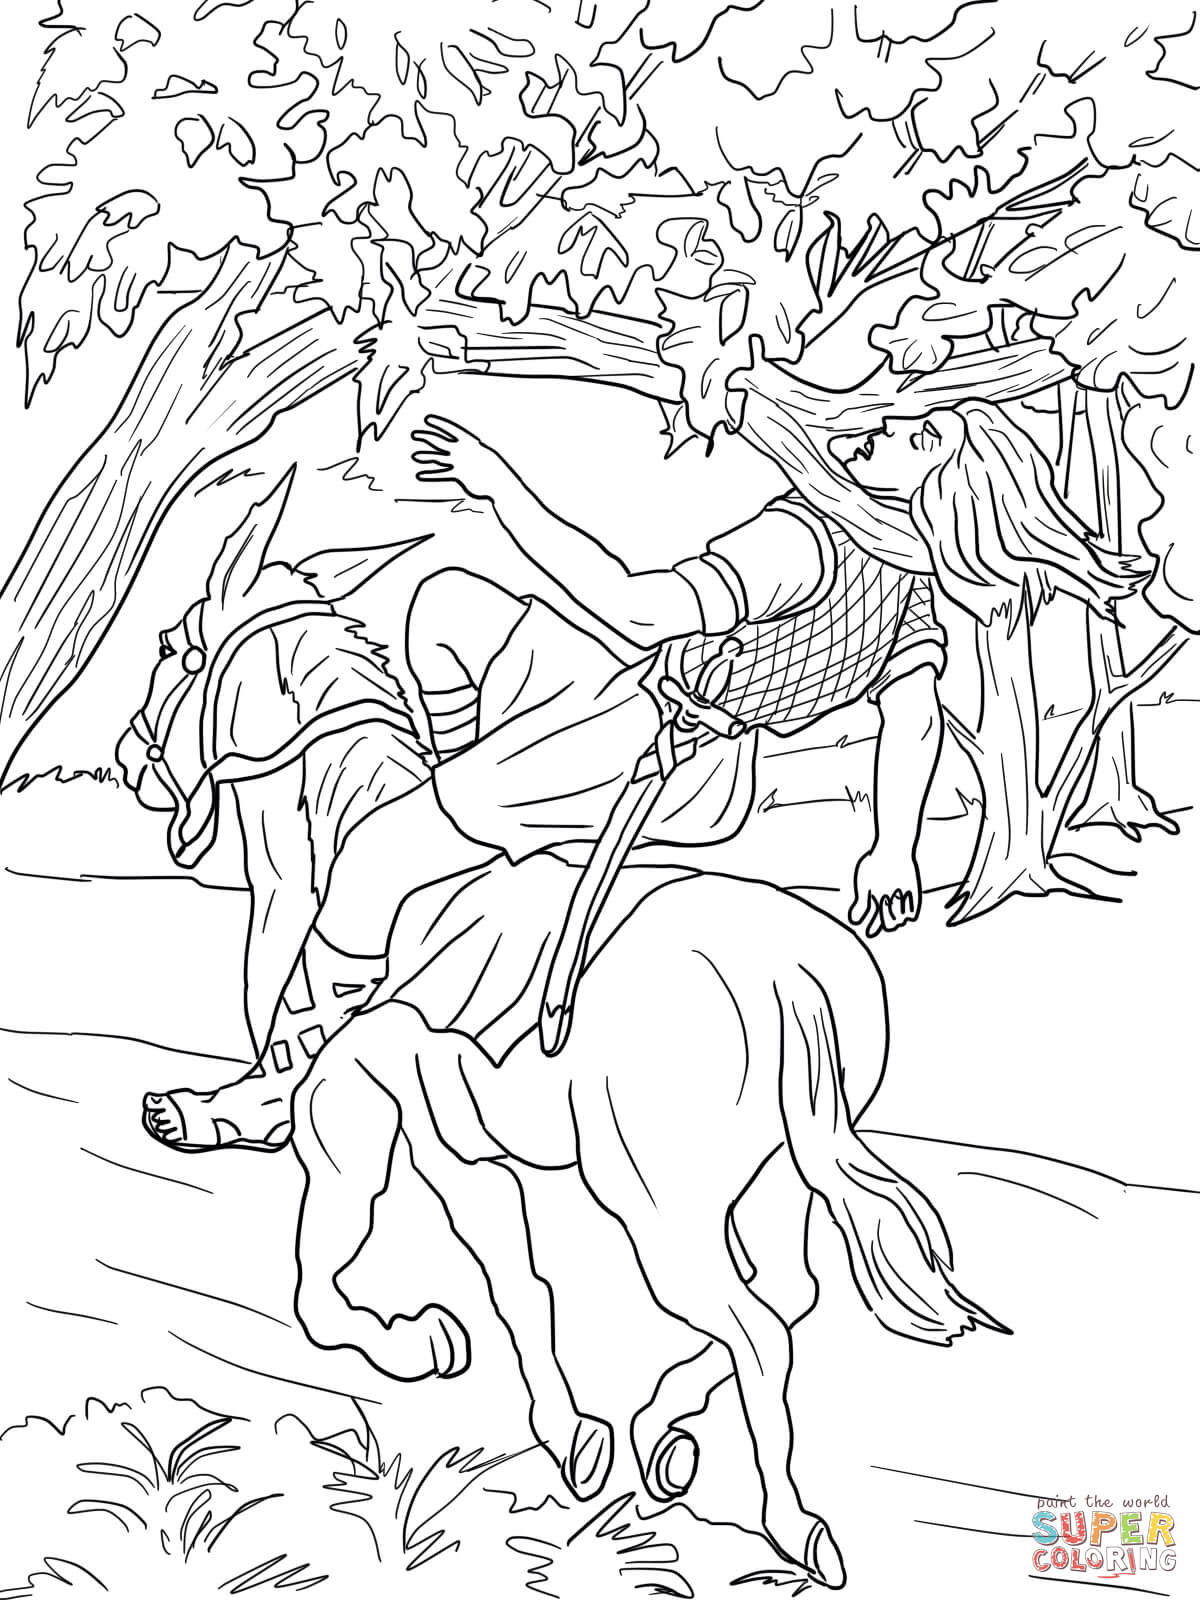 King David And Absalom Coloring Page Sketch Coloring Page